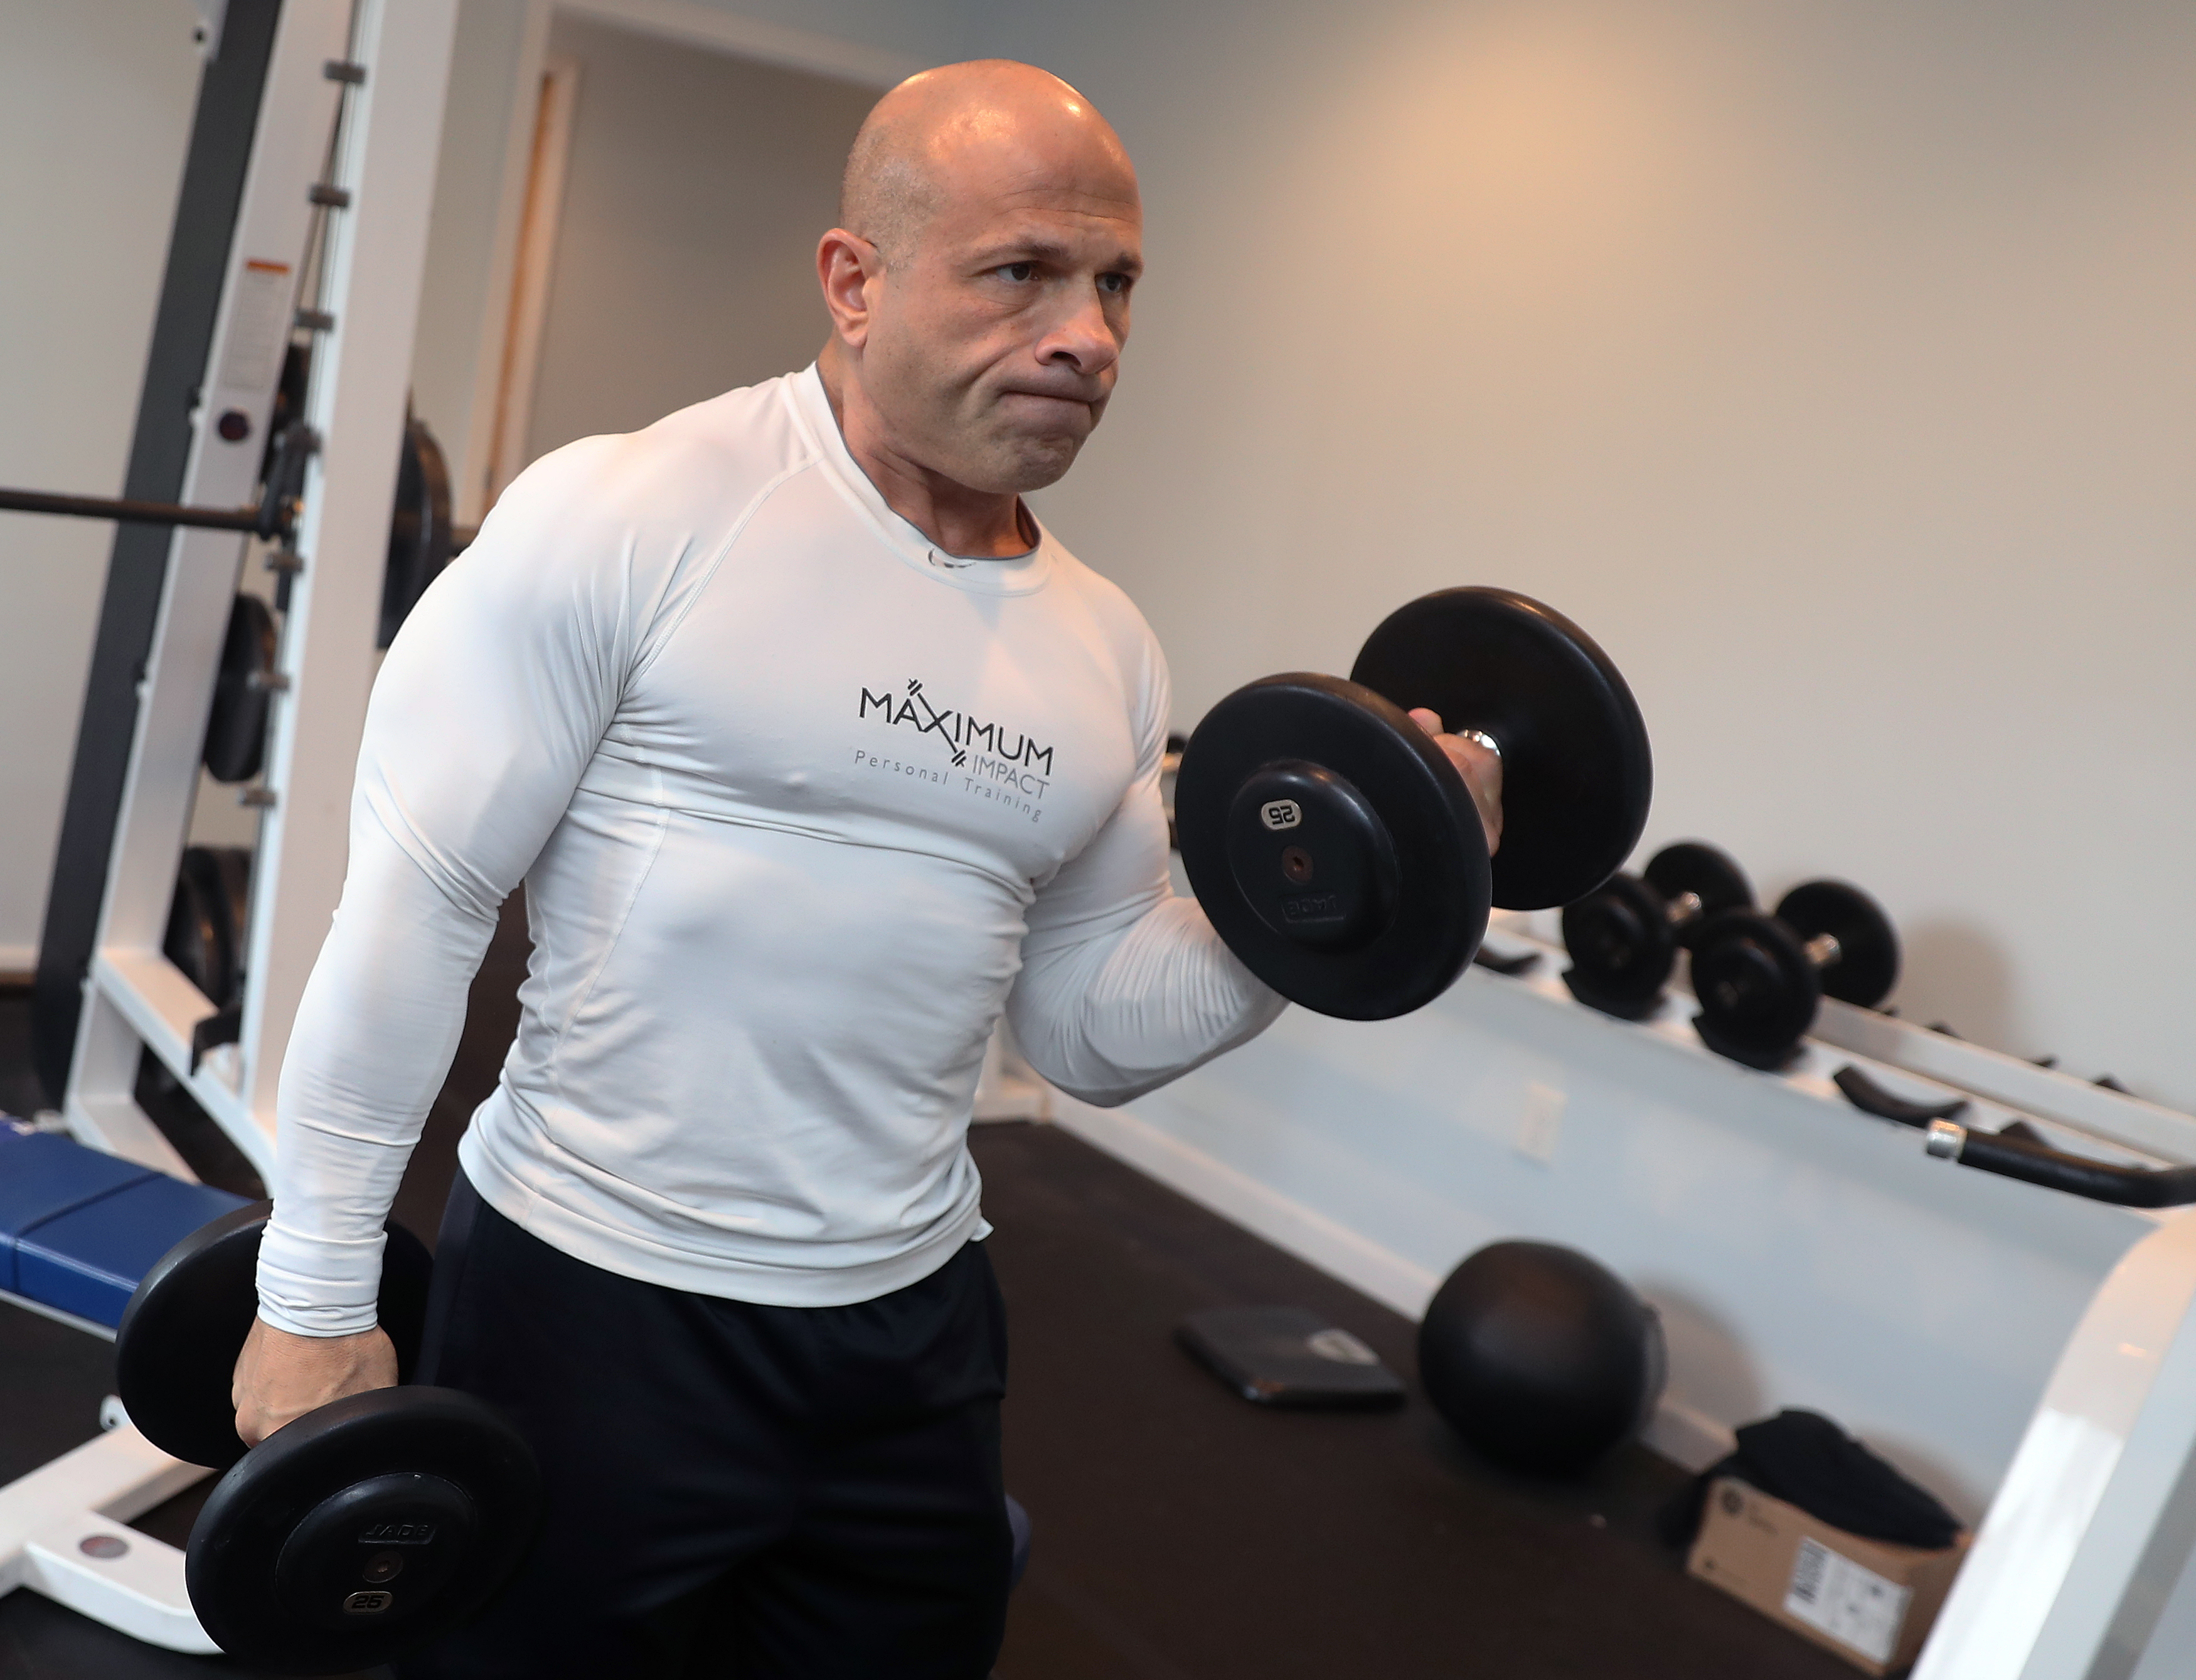 Dino Fudoli, the former Lancaster town supervisor, lifts weights at Maximum Impact, a gym he owns in Lancaster. (John Hickey/Buffalo News)